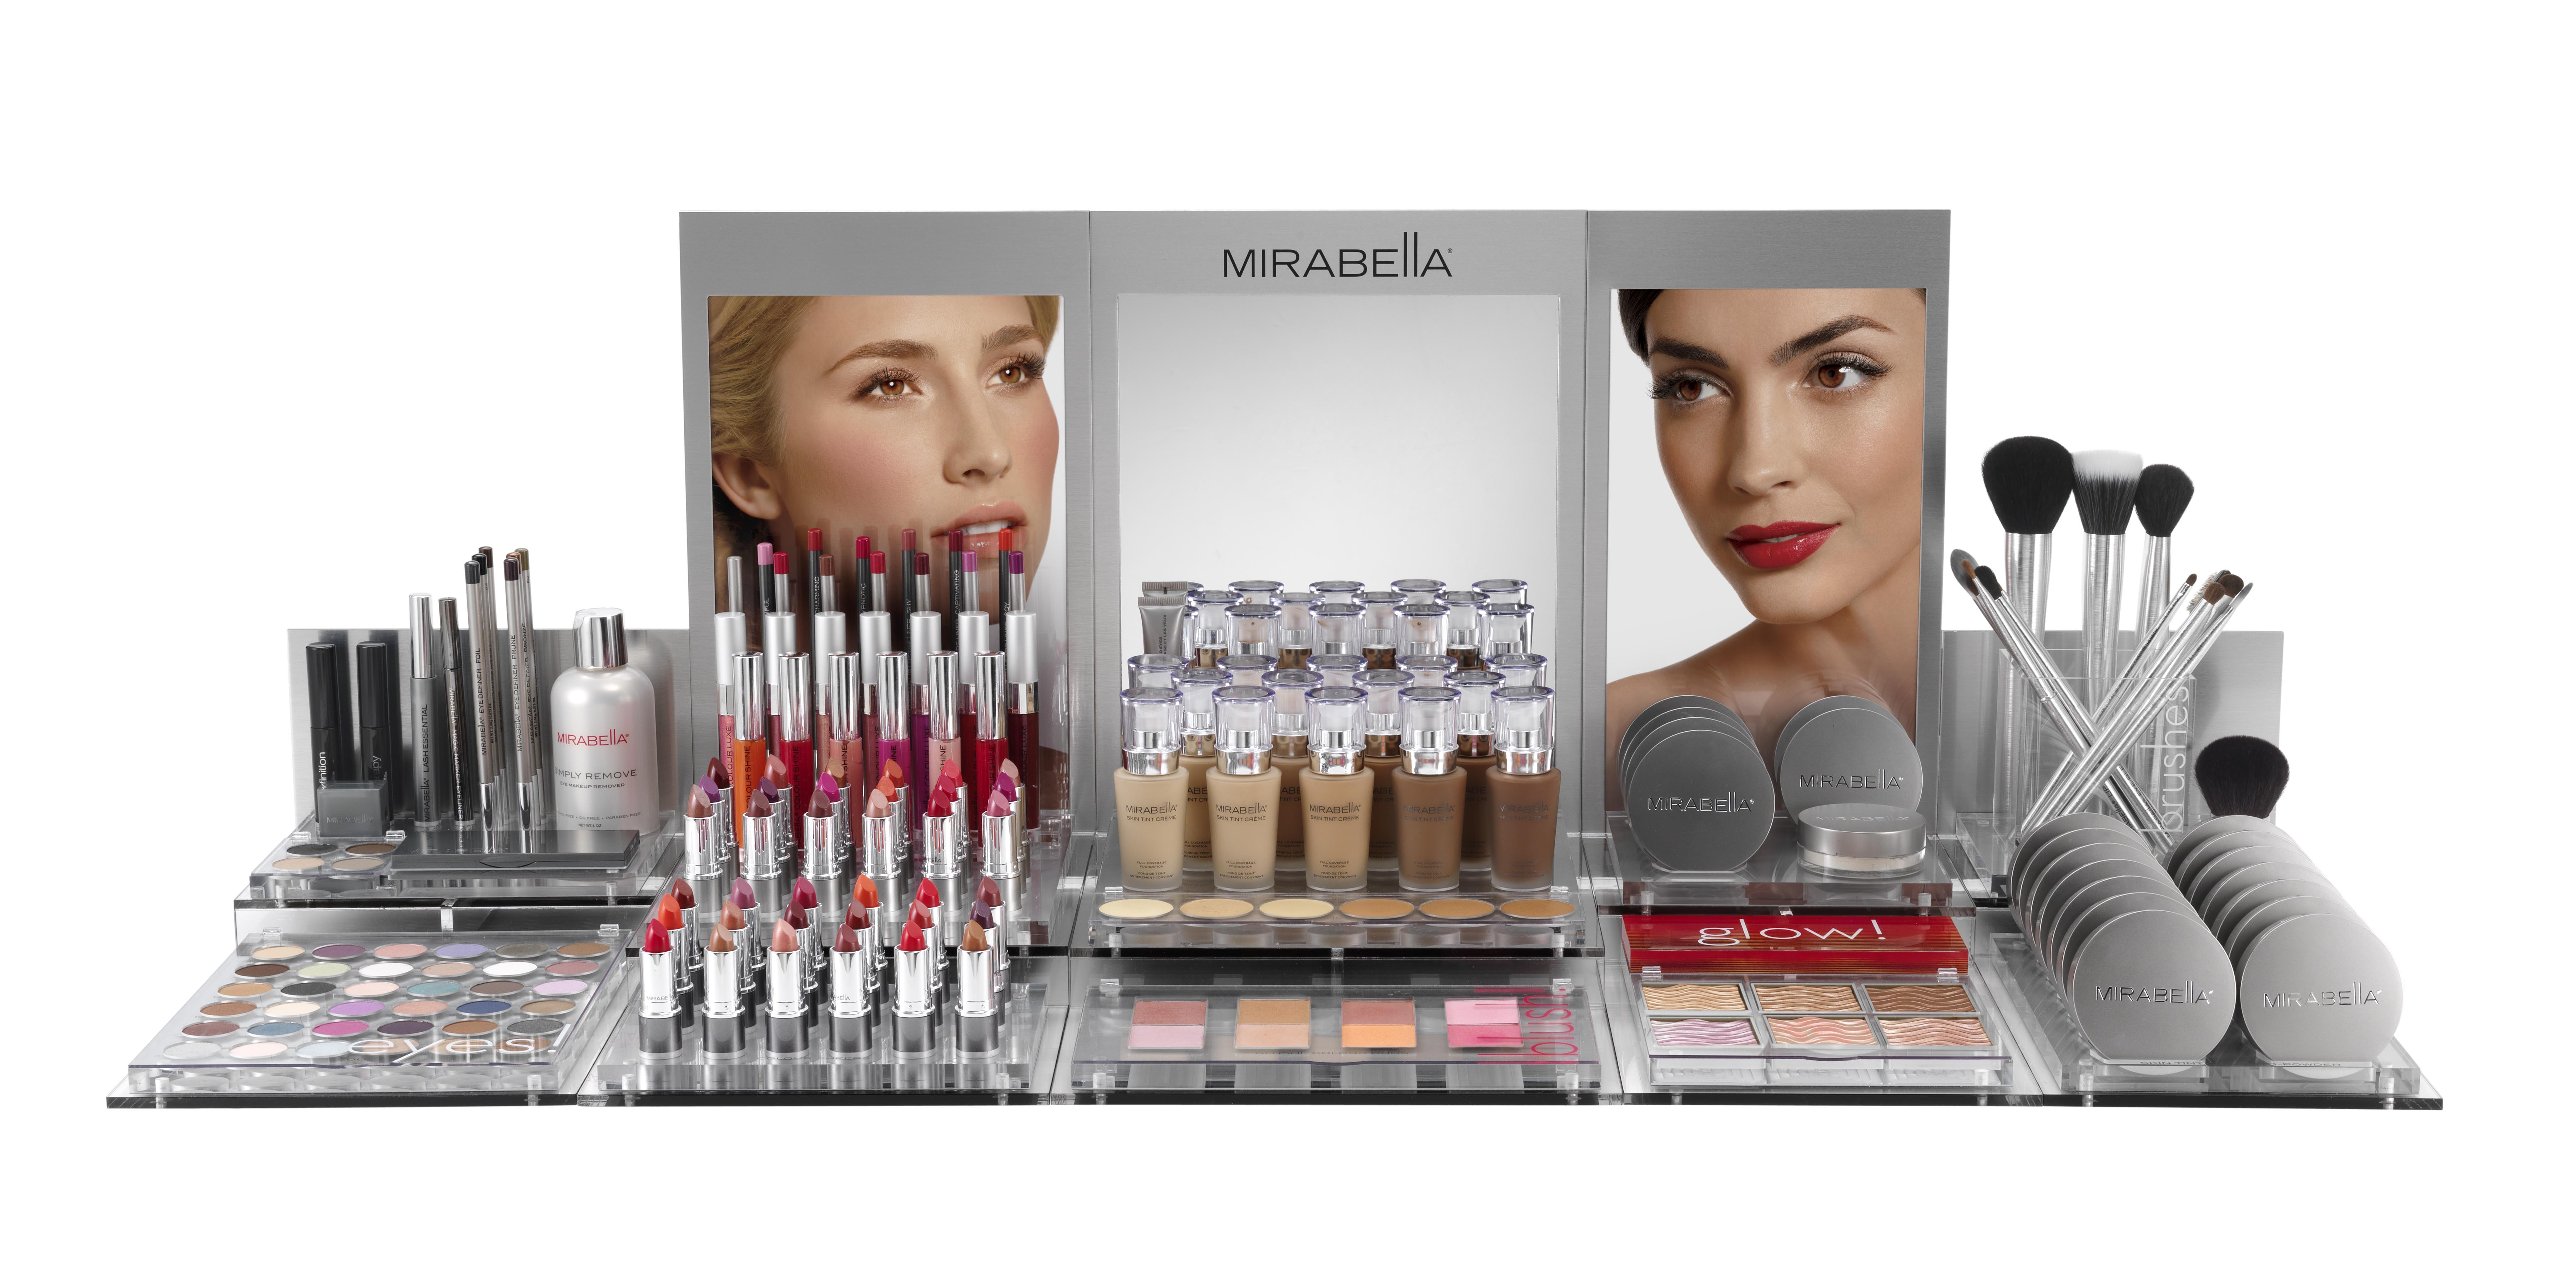 Mineral Makeup Brand Mirabella Launches